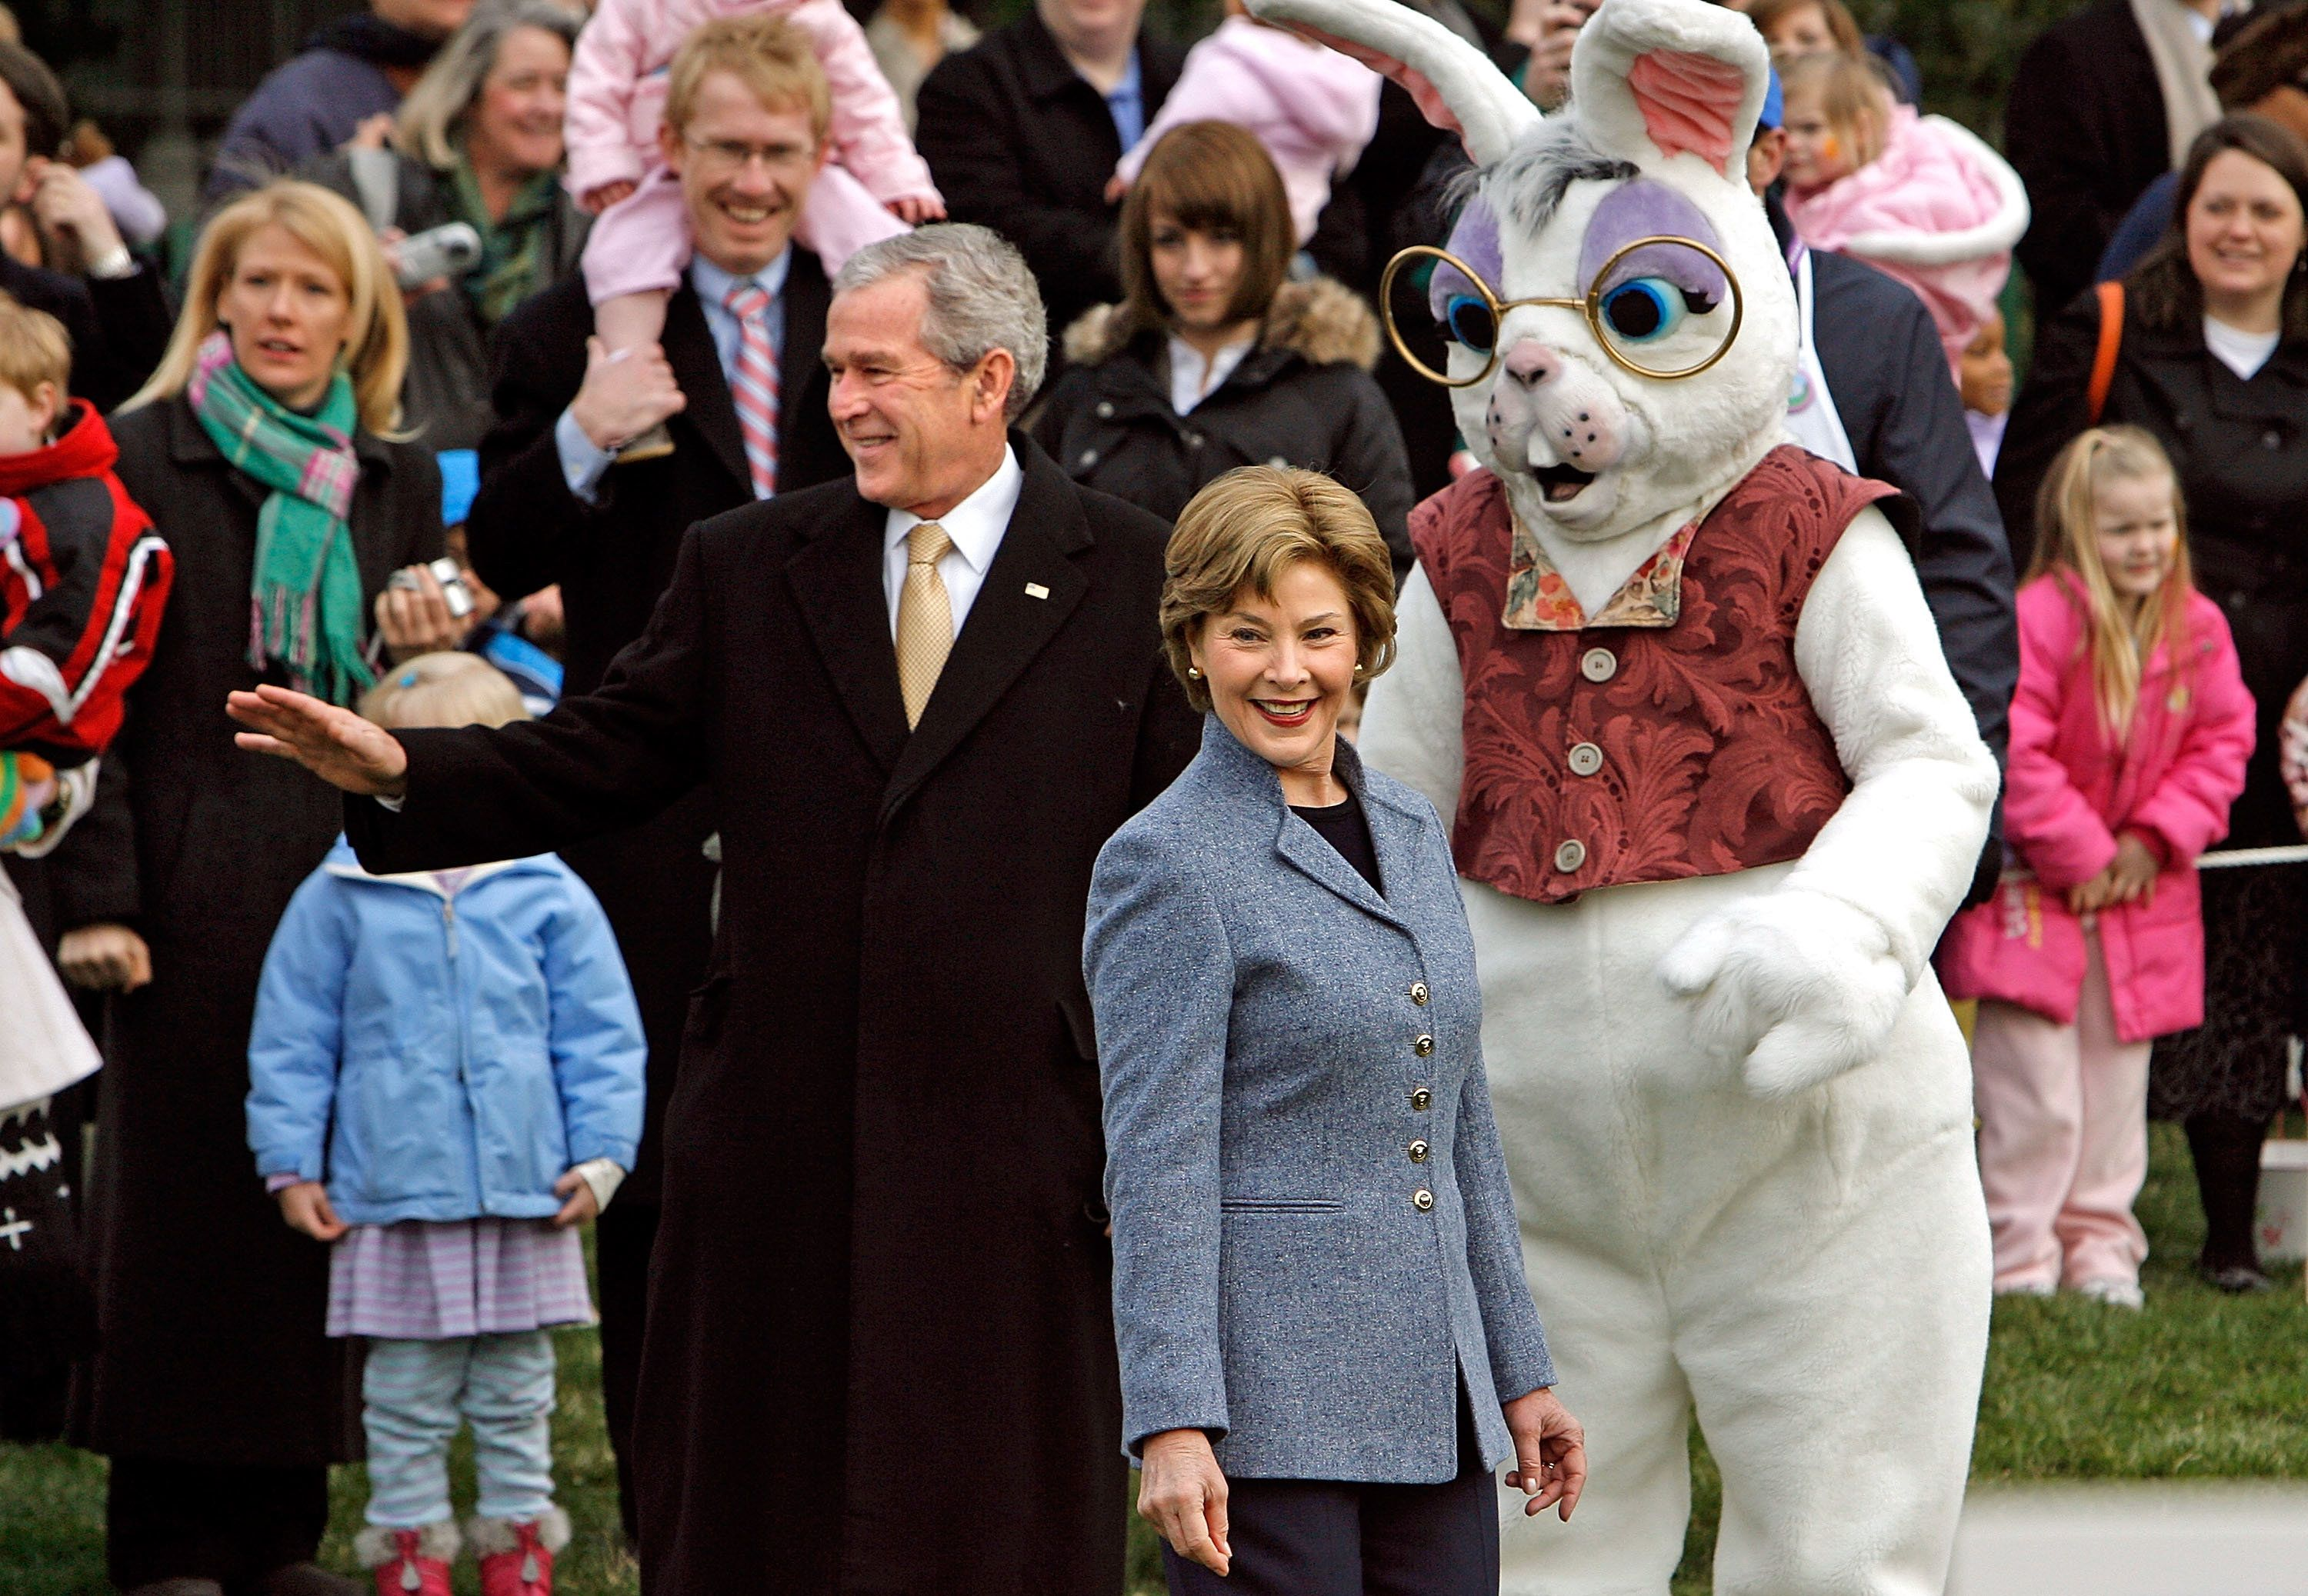 President George W. Bush, first lady Laura Bush and the Easter Bunnywelcome guests to the annual Easter Egg Roll on Mar